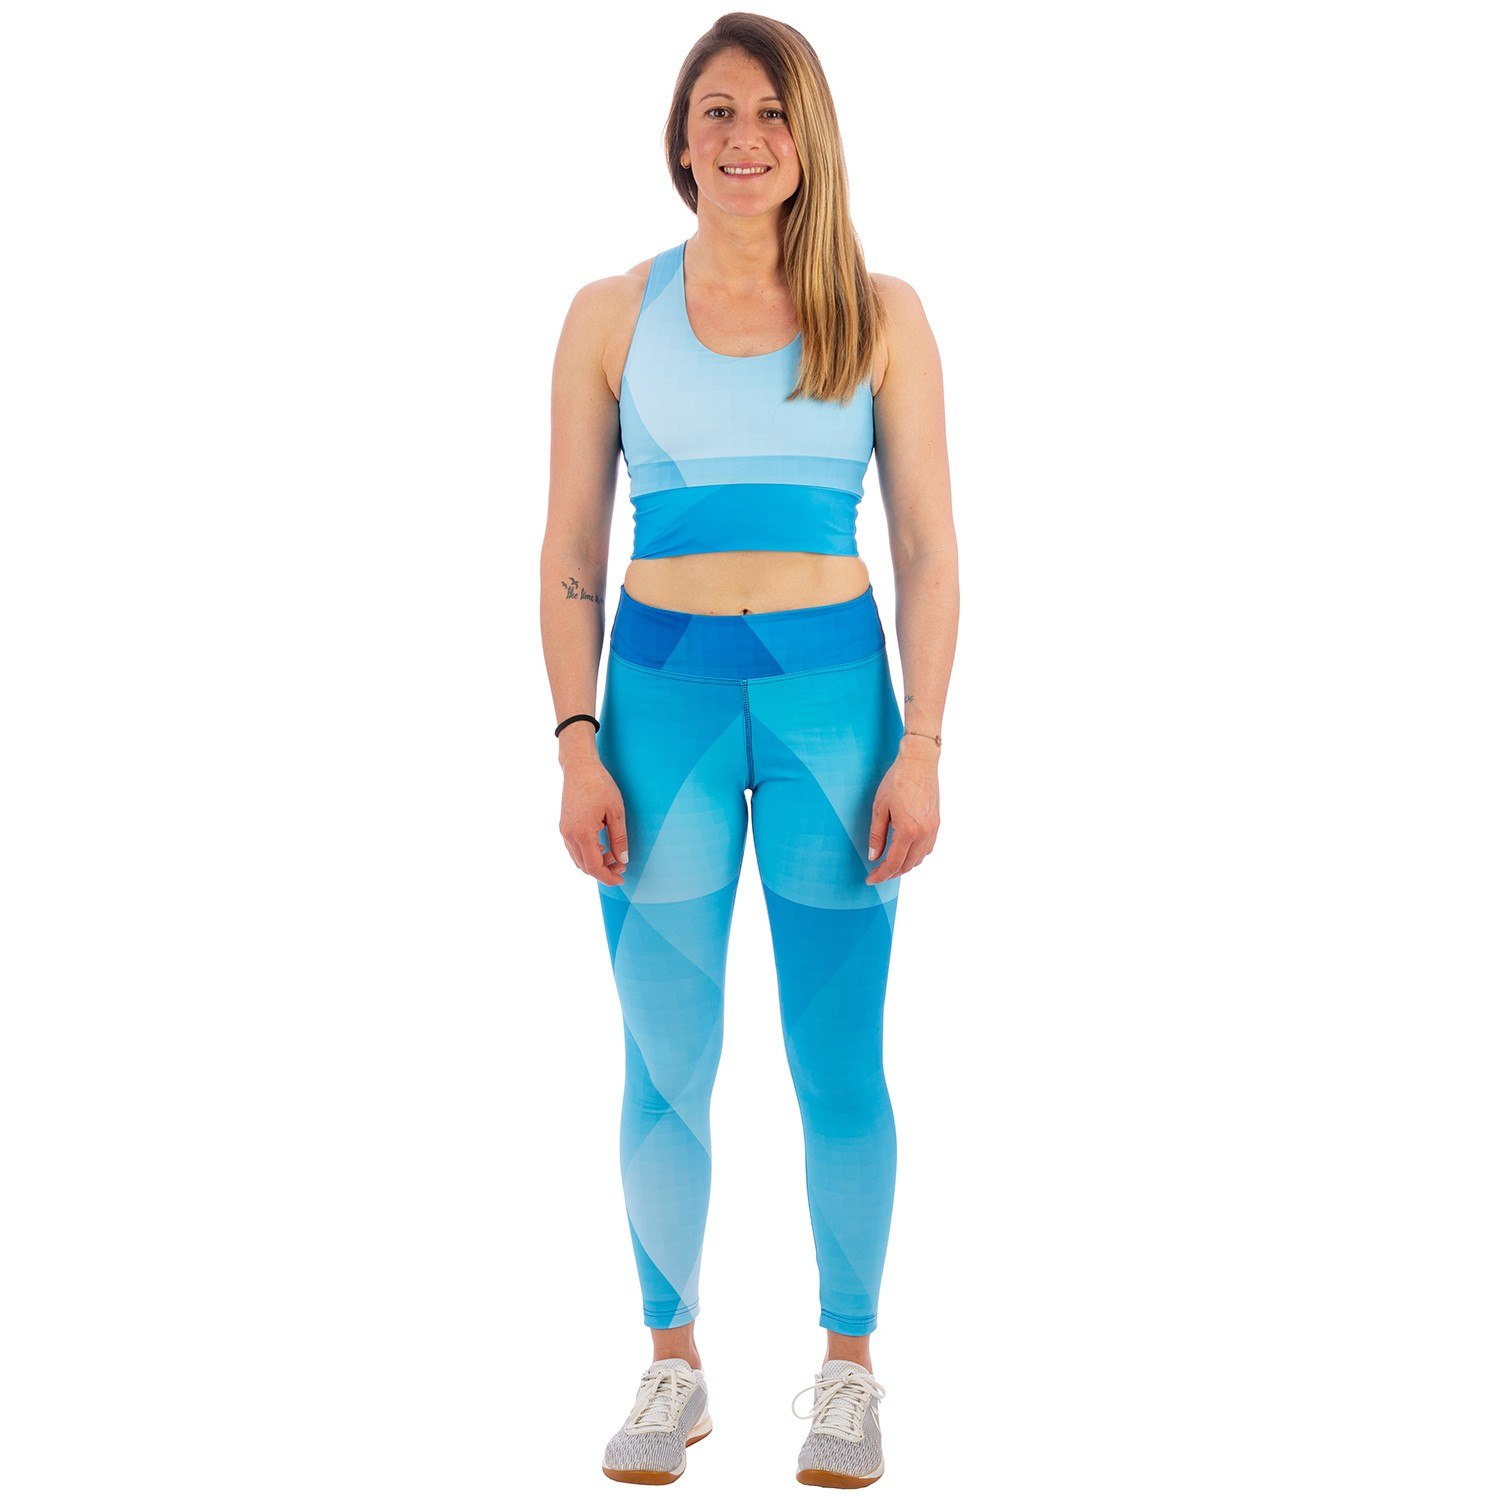 STOAK ICE - ICE Package Top + Leggings